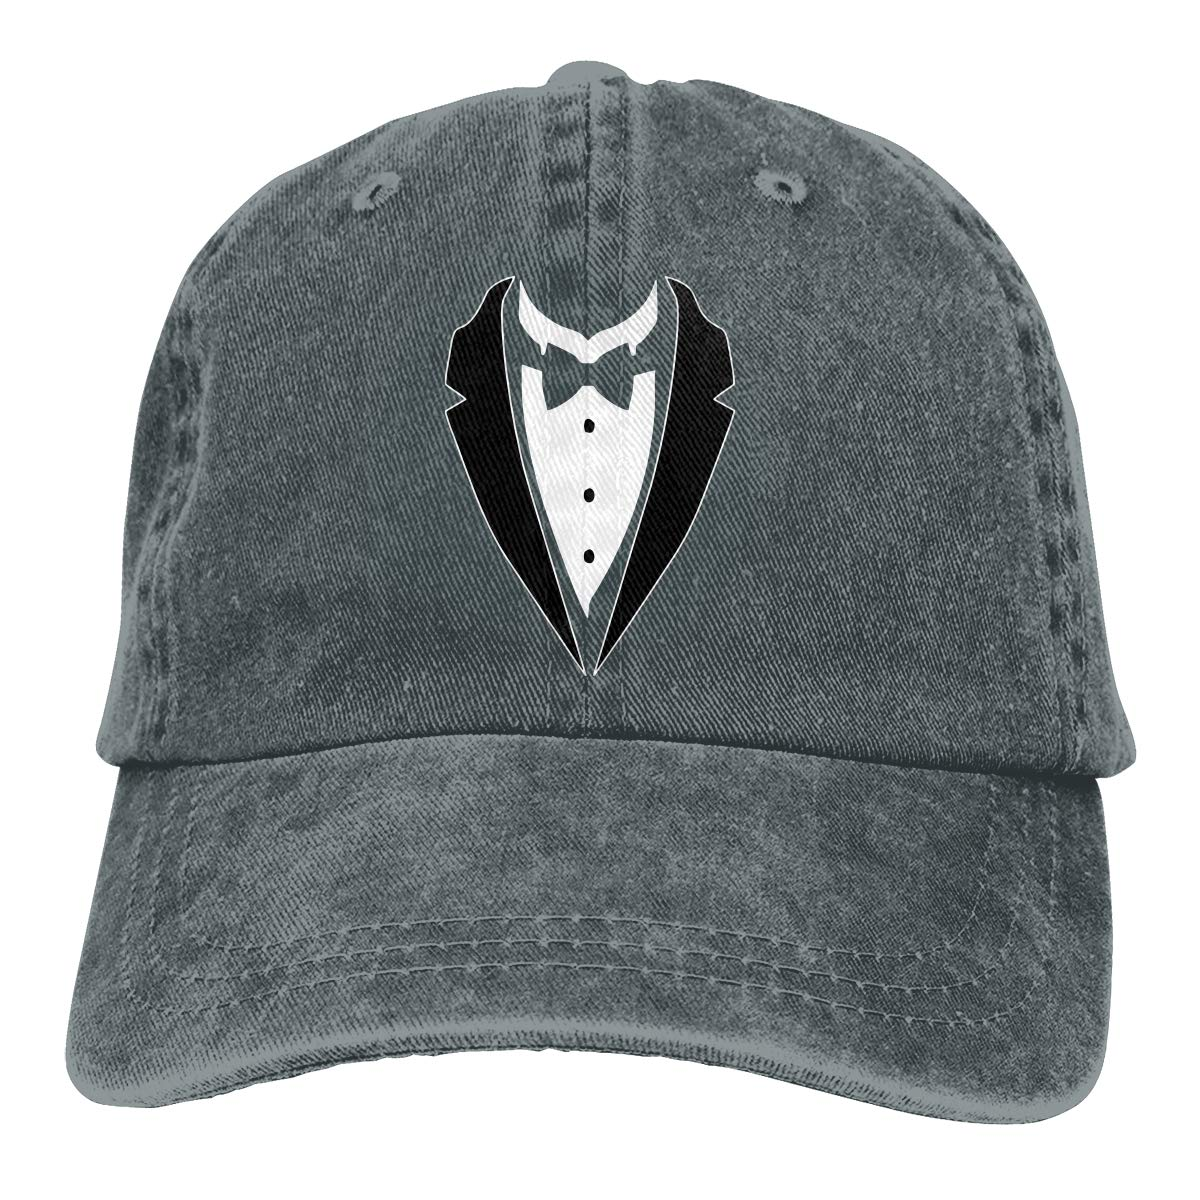 PMGM-C Tuxedo with Bow-tie Adult Trendy Denim Casquette Adjustable Baseball Cap